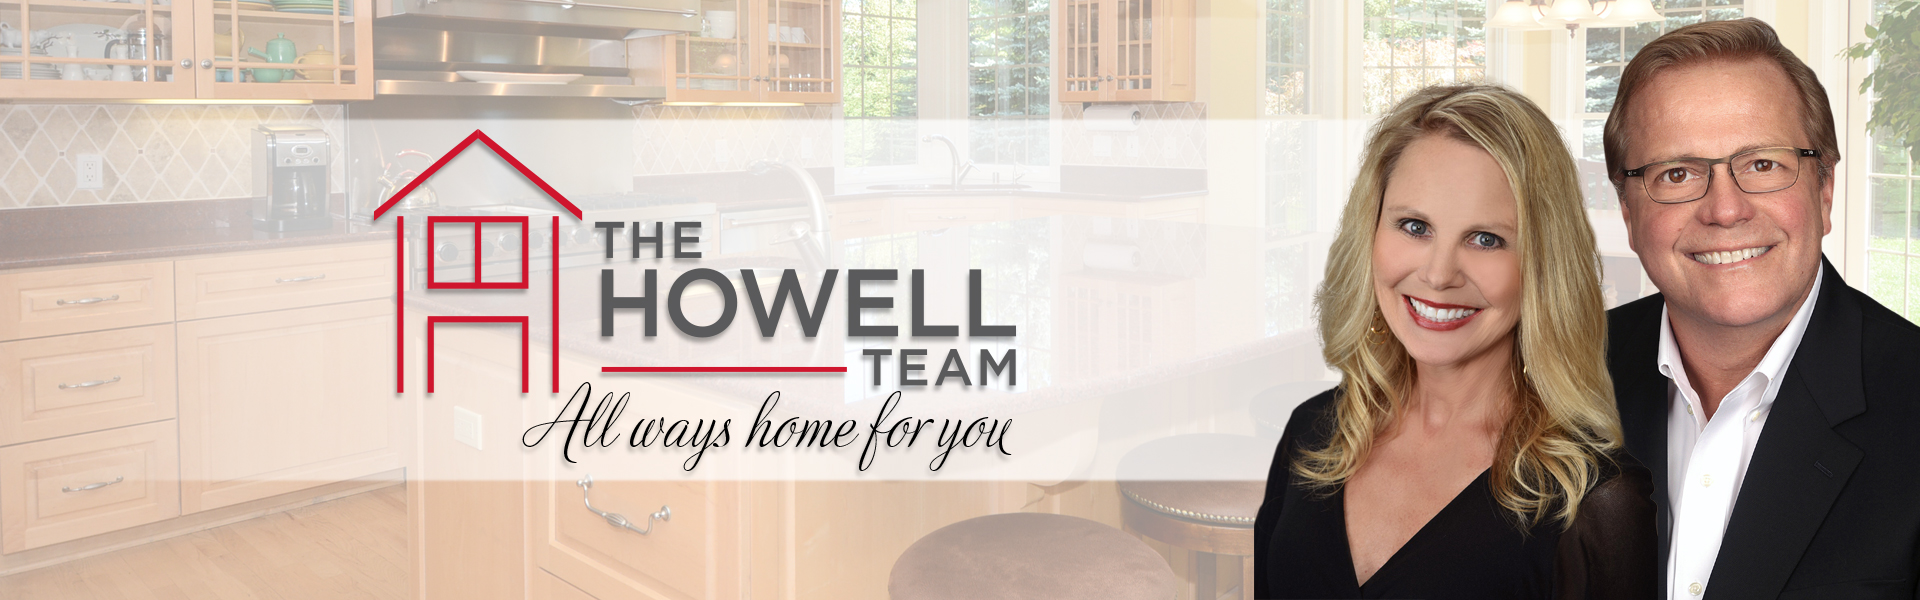 The Howell Team